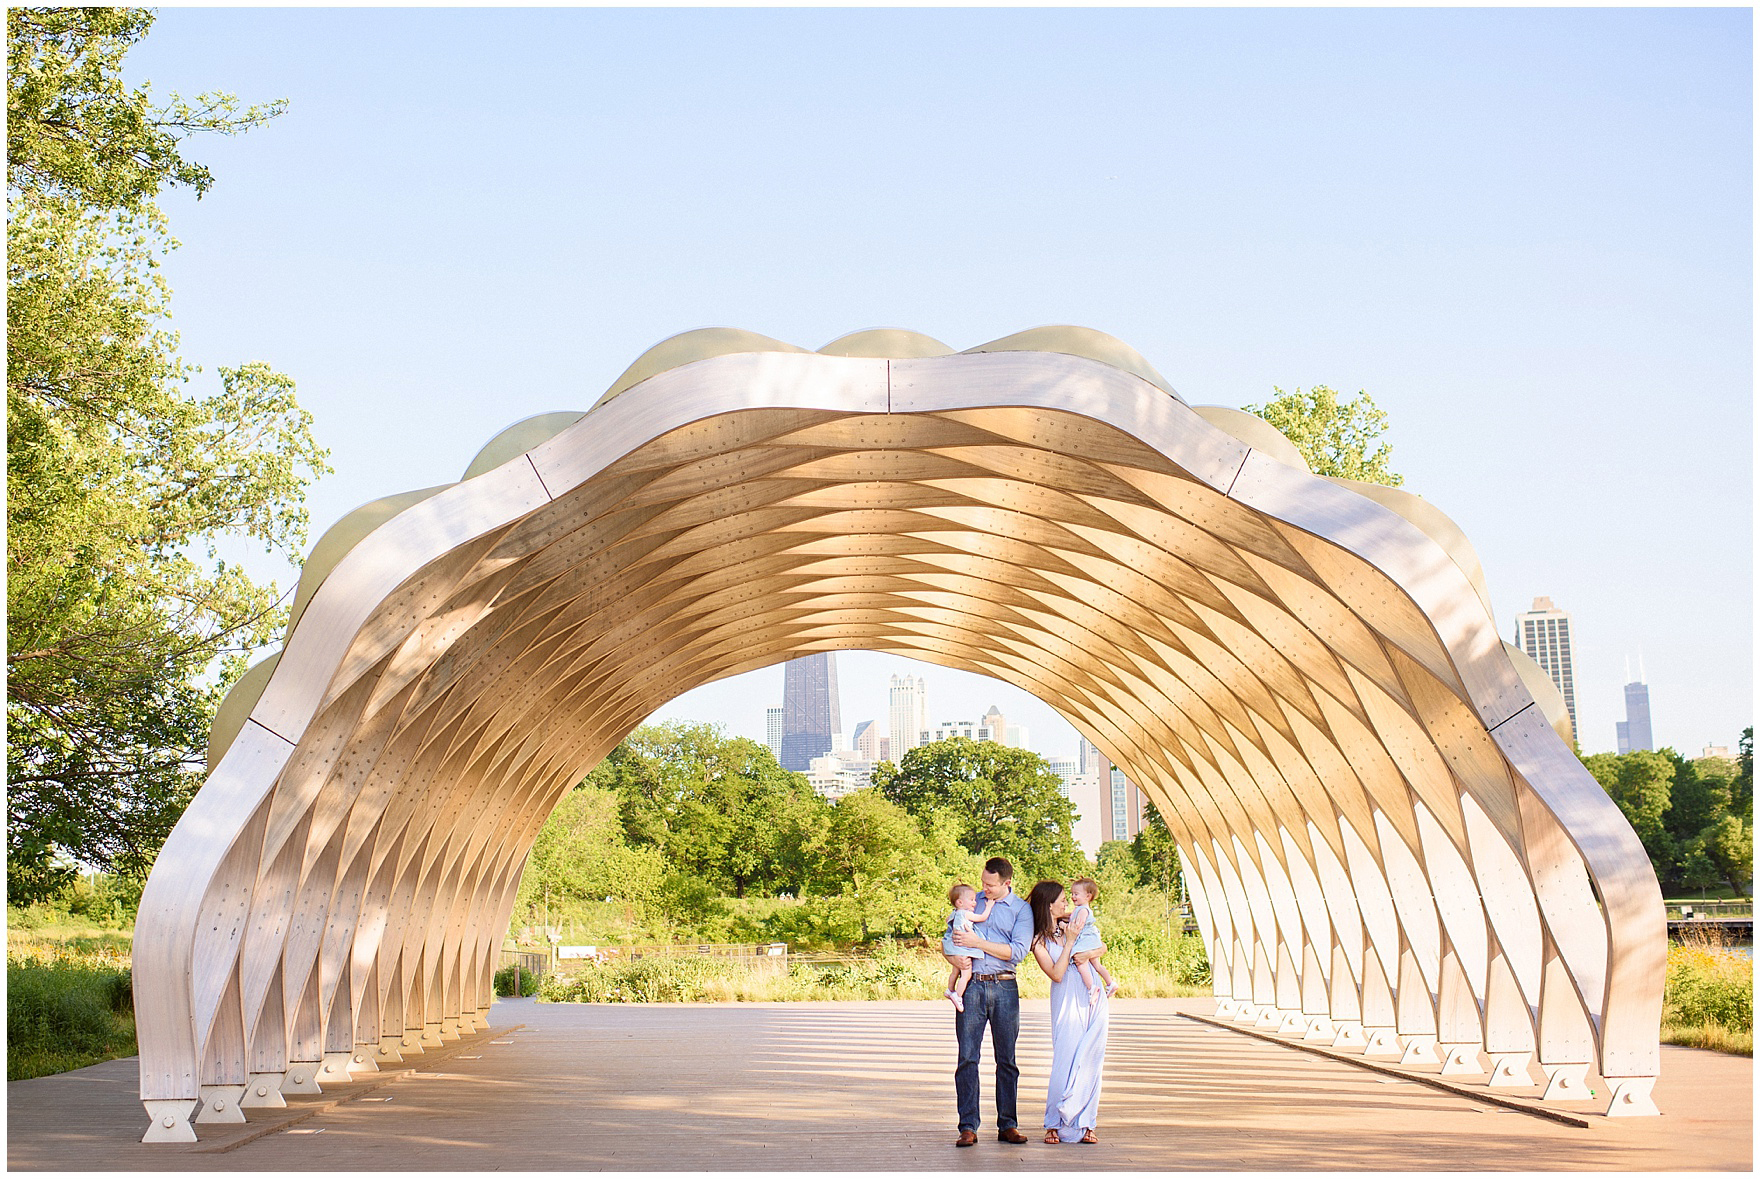 A family stands beneath the honeycomb during a Chicago Lincoln Park family photography session.